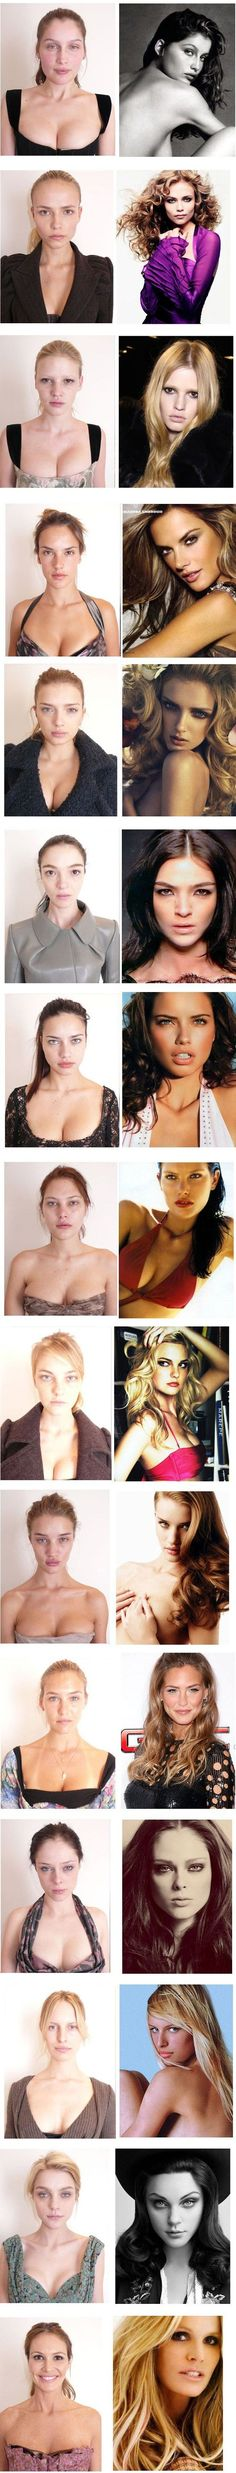 This just confirms what I've always believed- that ANY woman can look great with the right makeup artist, hair dresser, stylist, light designer and photographer. So don't be so hard on yourself if you can't afford all of those things.